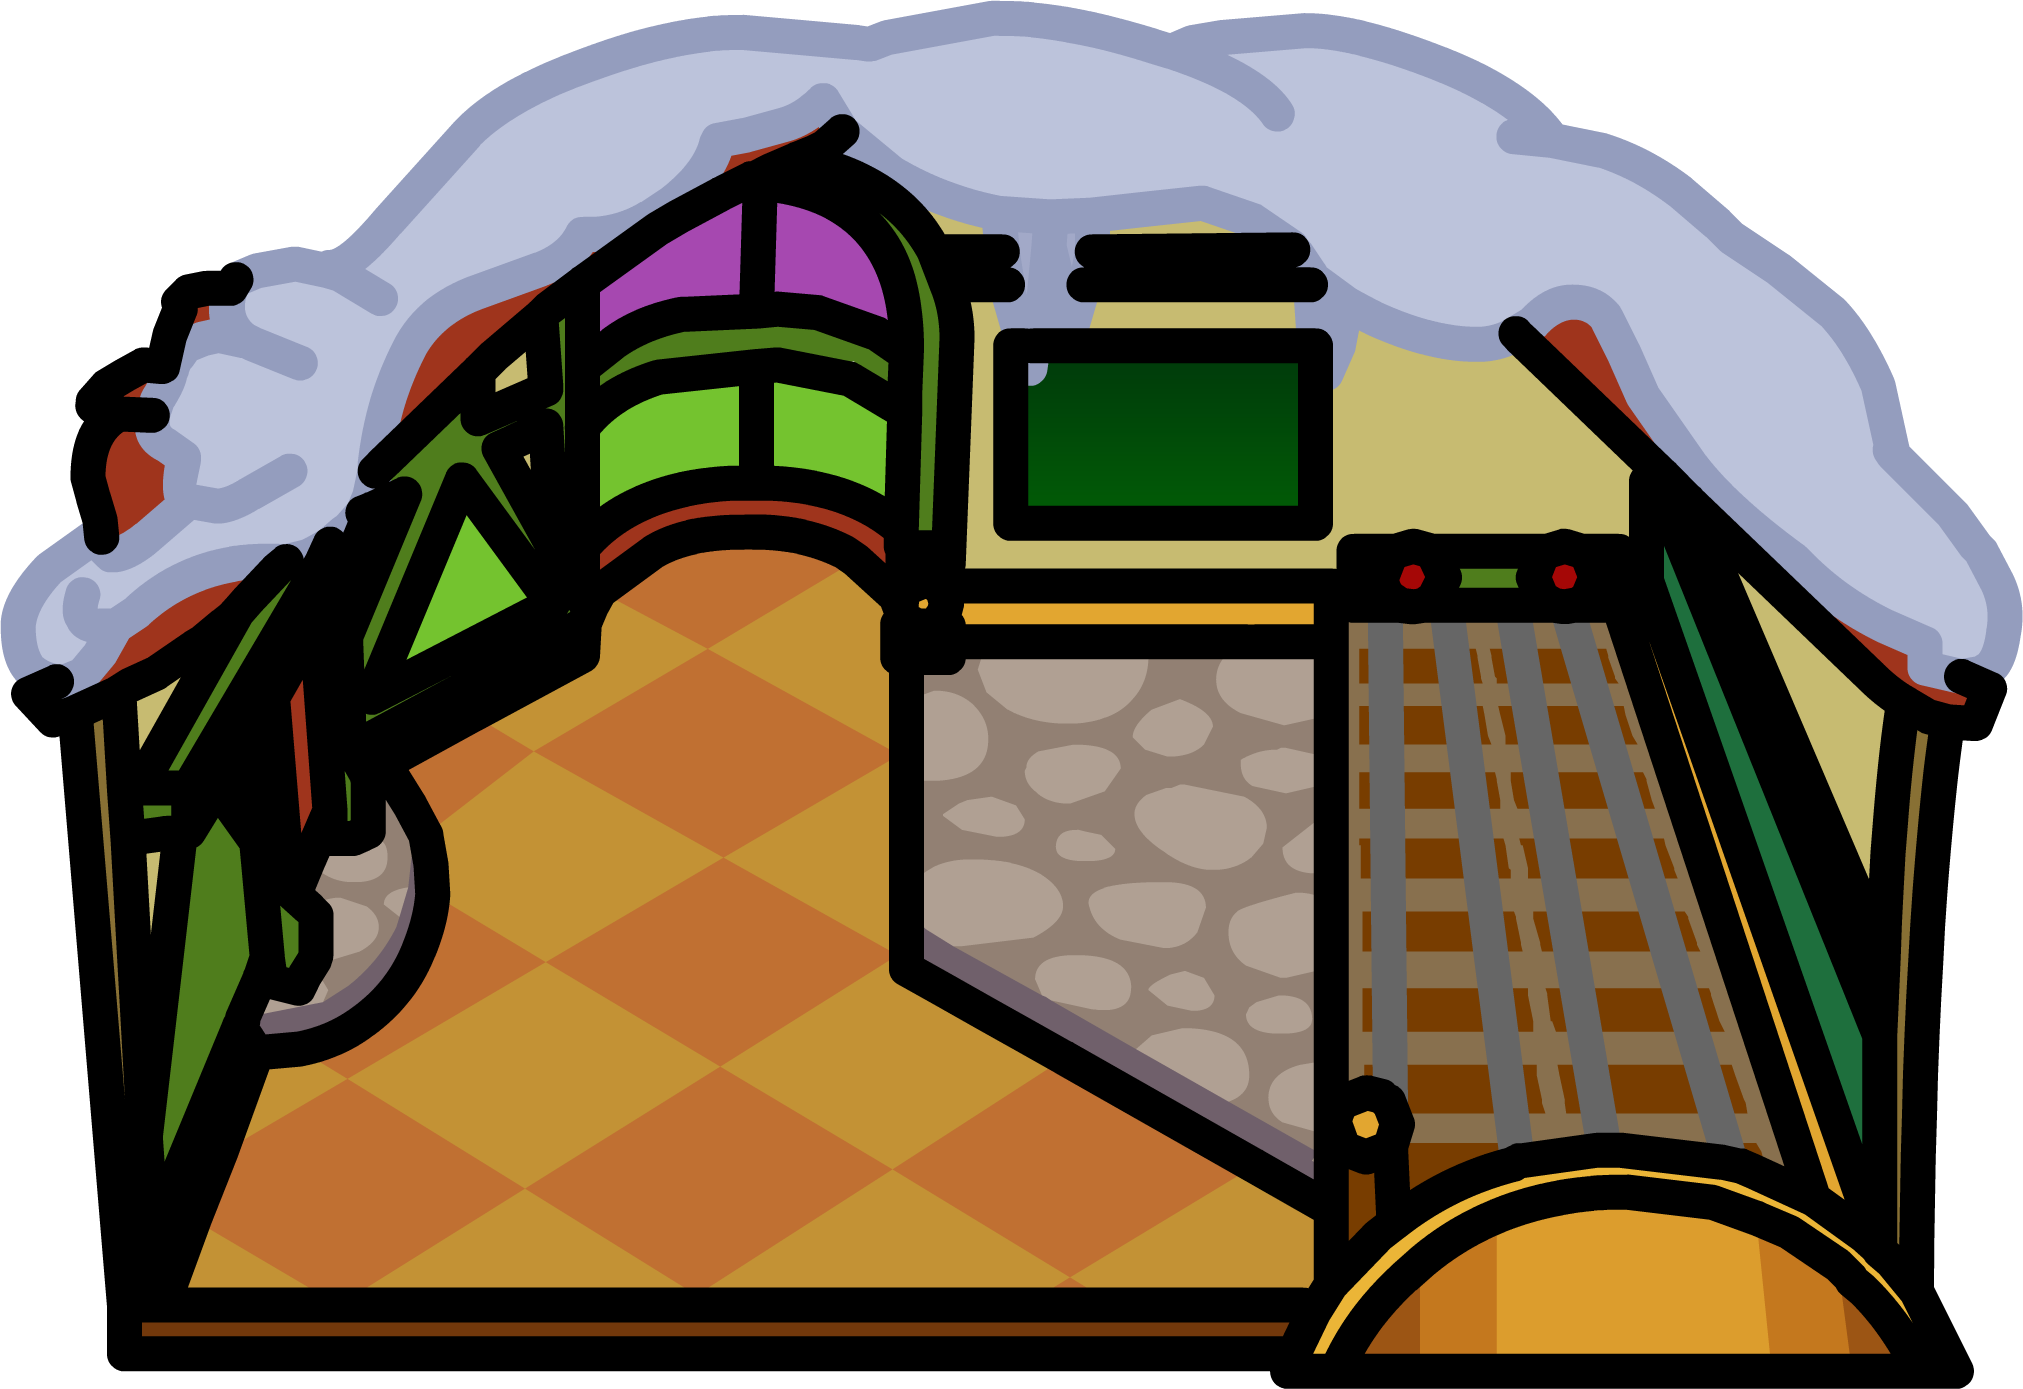 Igloo clipart man. Image buildings icons png